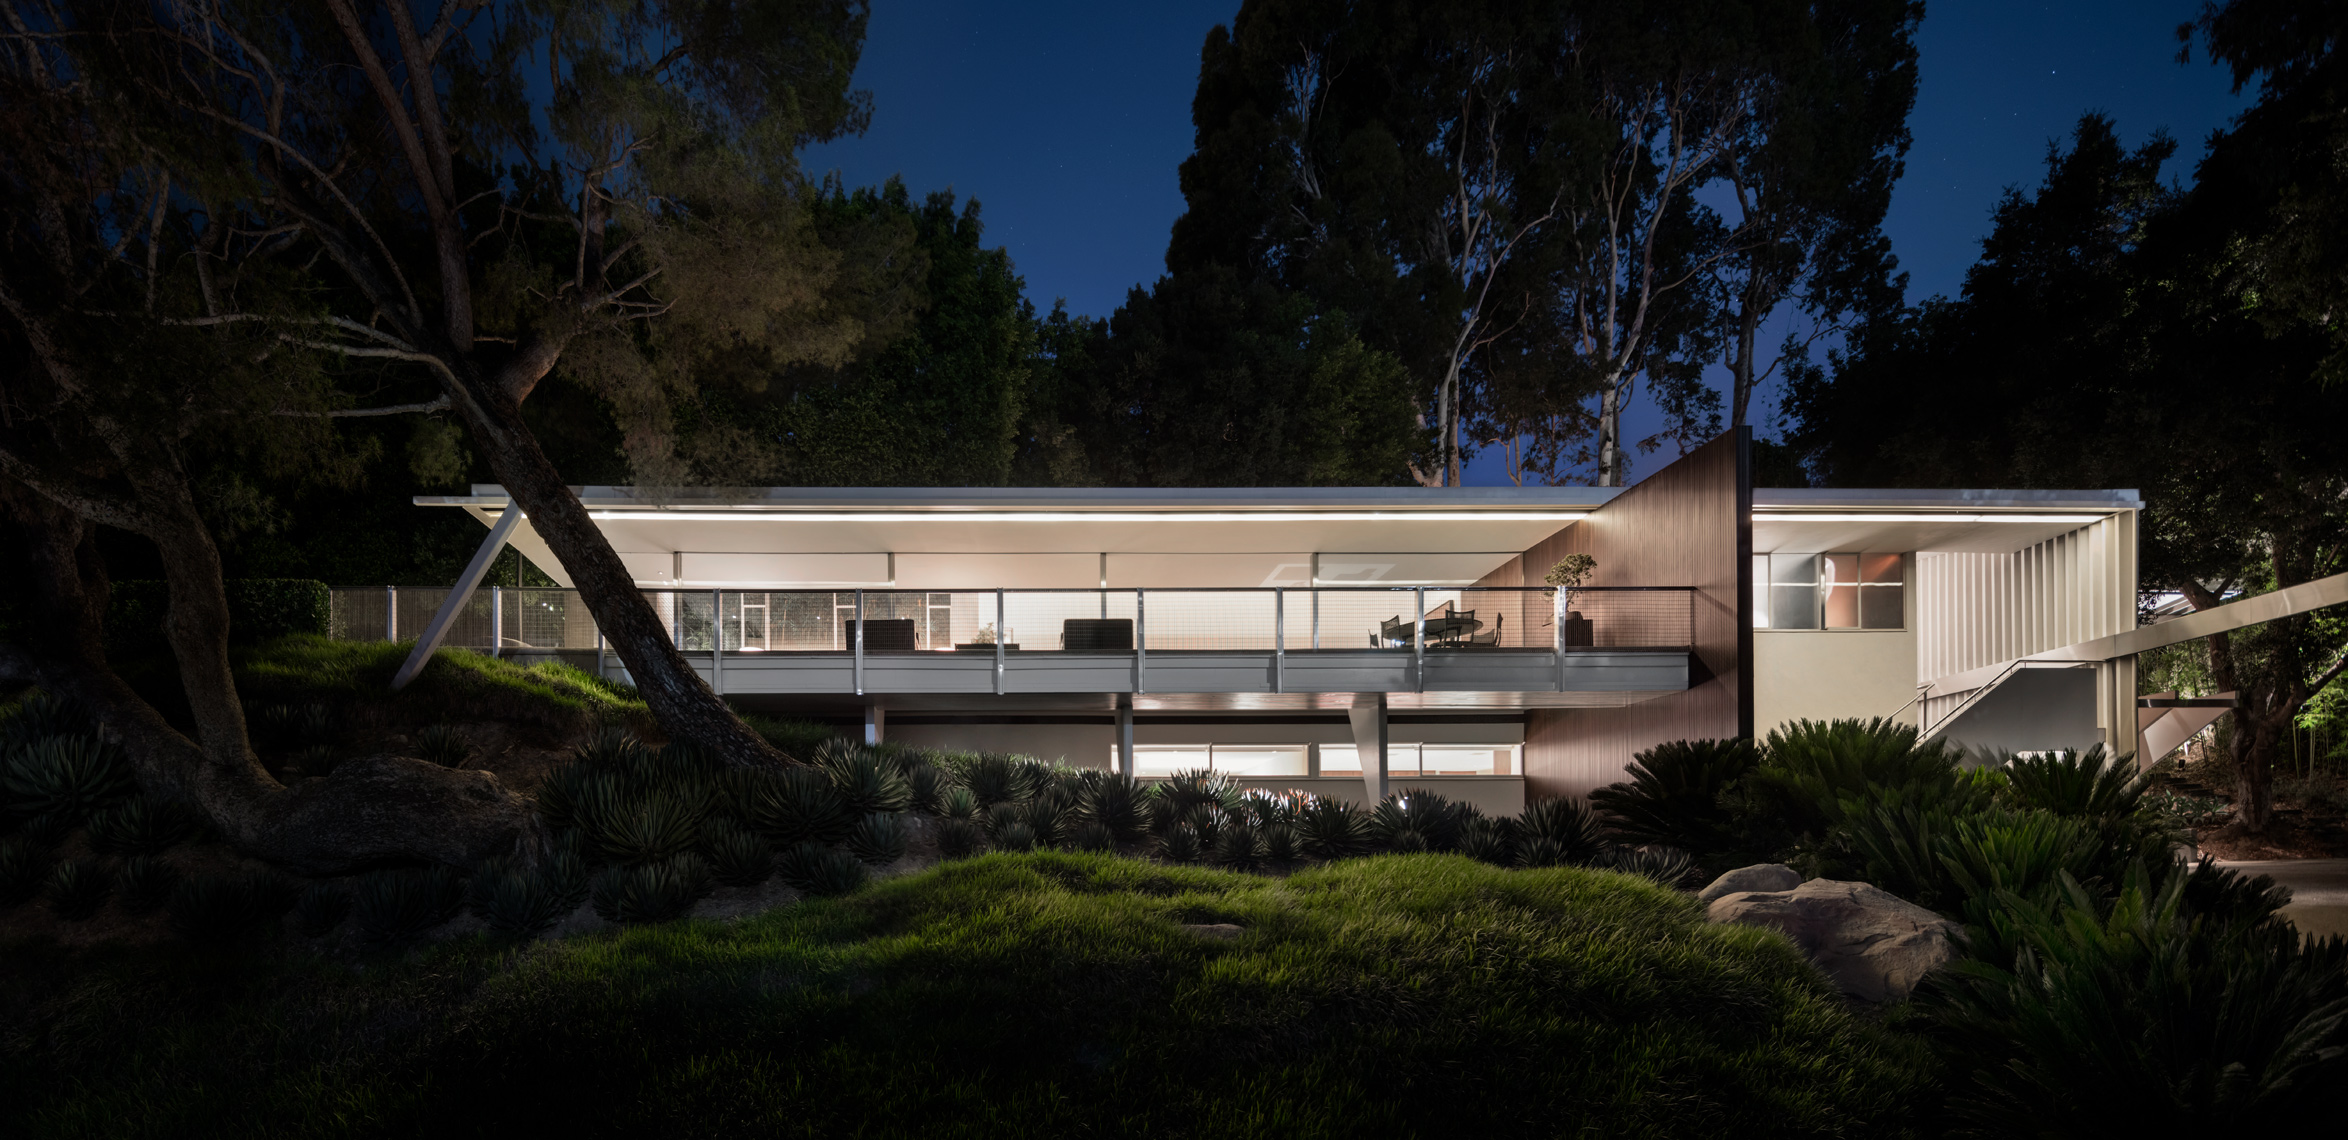 Neura Brown House, Bel Air, Modernist